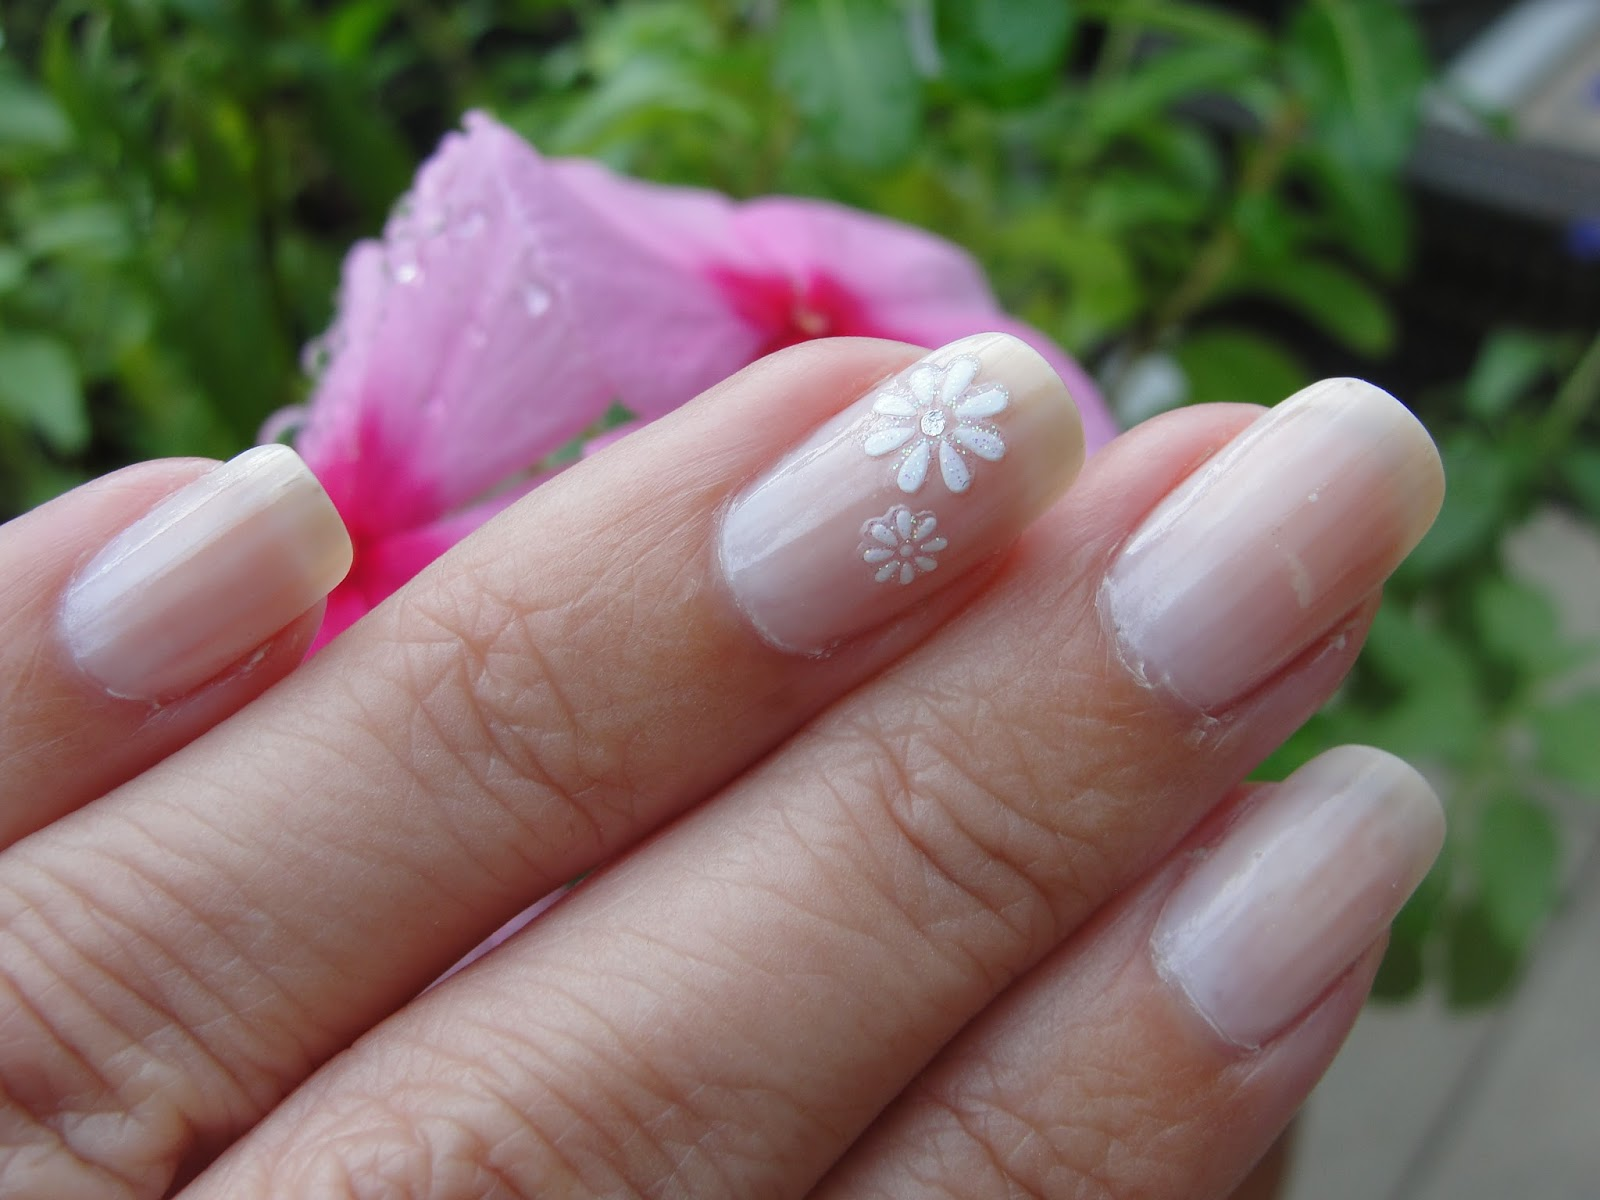 7 tips on how to save money on your wedding wedding nail inspirations s for you all simple enough to do yourself at the convenience of your home just add some flower stickers or some glitter solutioingenieria